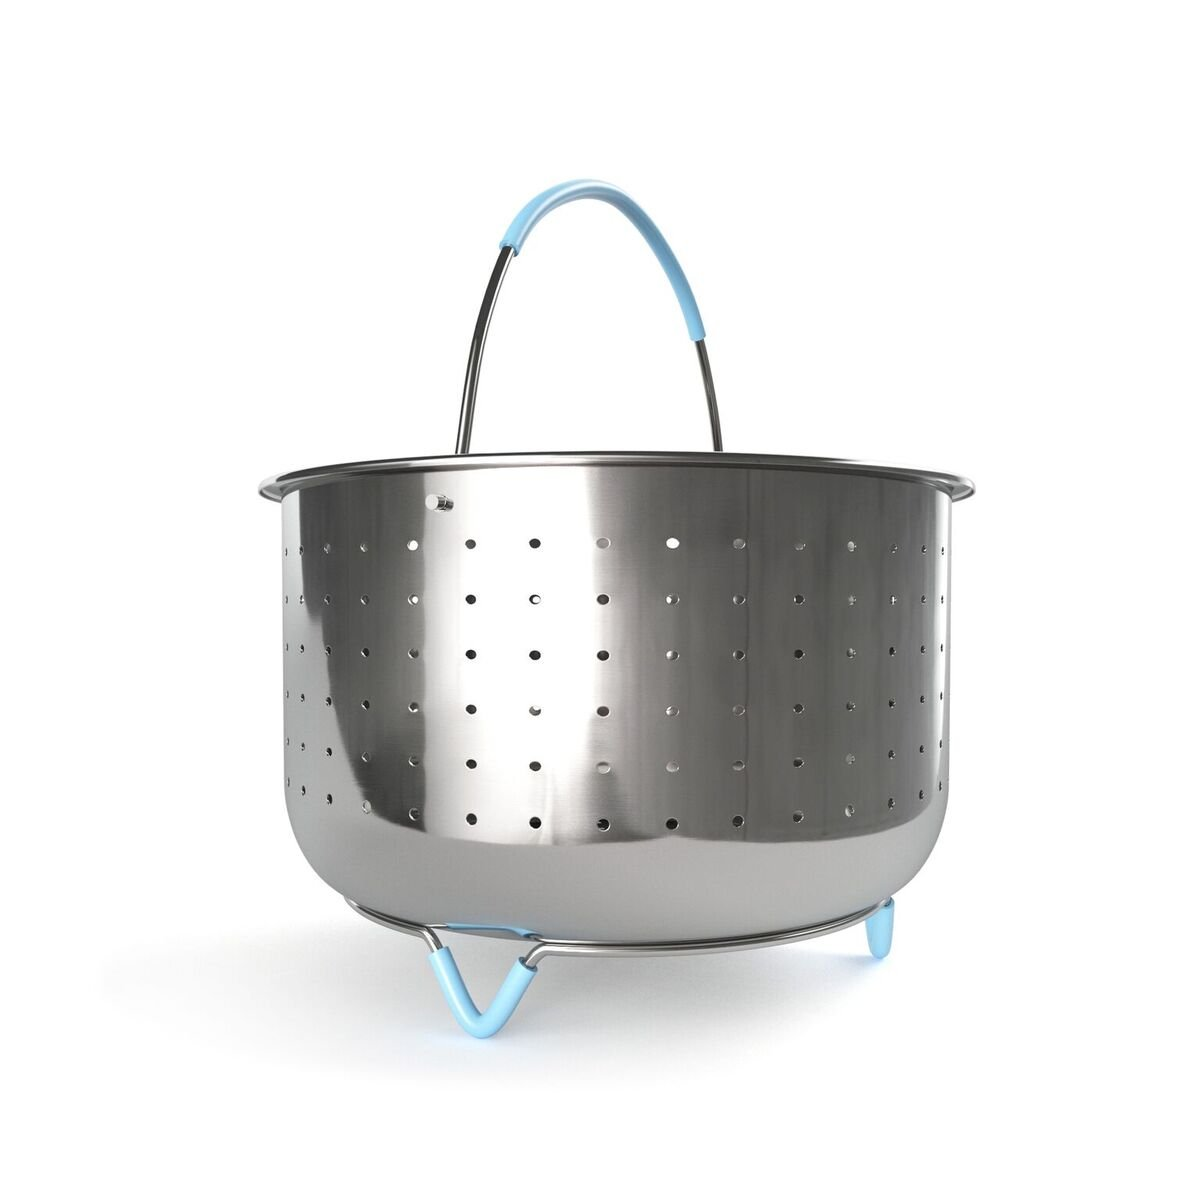 Instant Pot Steamer Basket Accessories- For 6qt Pressure Cooker Instapot Insta pot. Food Grade 304 Stainless Steel Blue Silicone Handle and Legs Great for Steaming Vegetables, Meat, Eggs, Clams, etc.